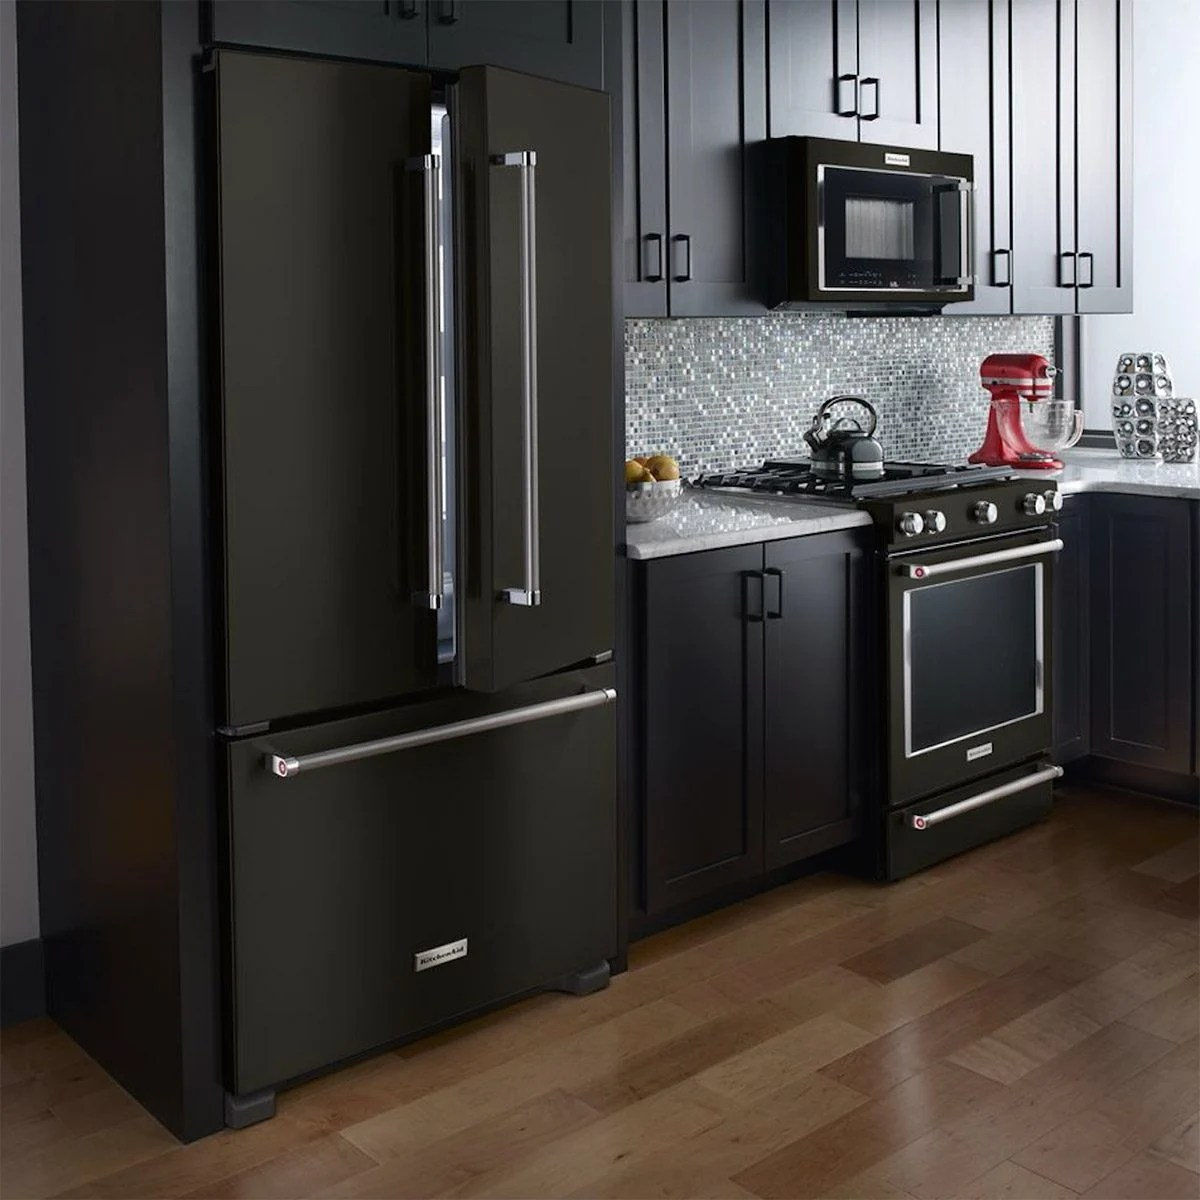 kitchen aid appliances island design home trend black stainless steel  the family